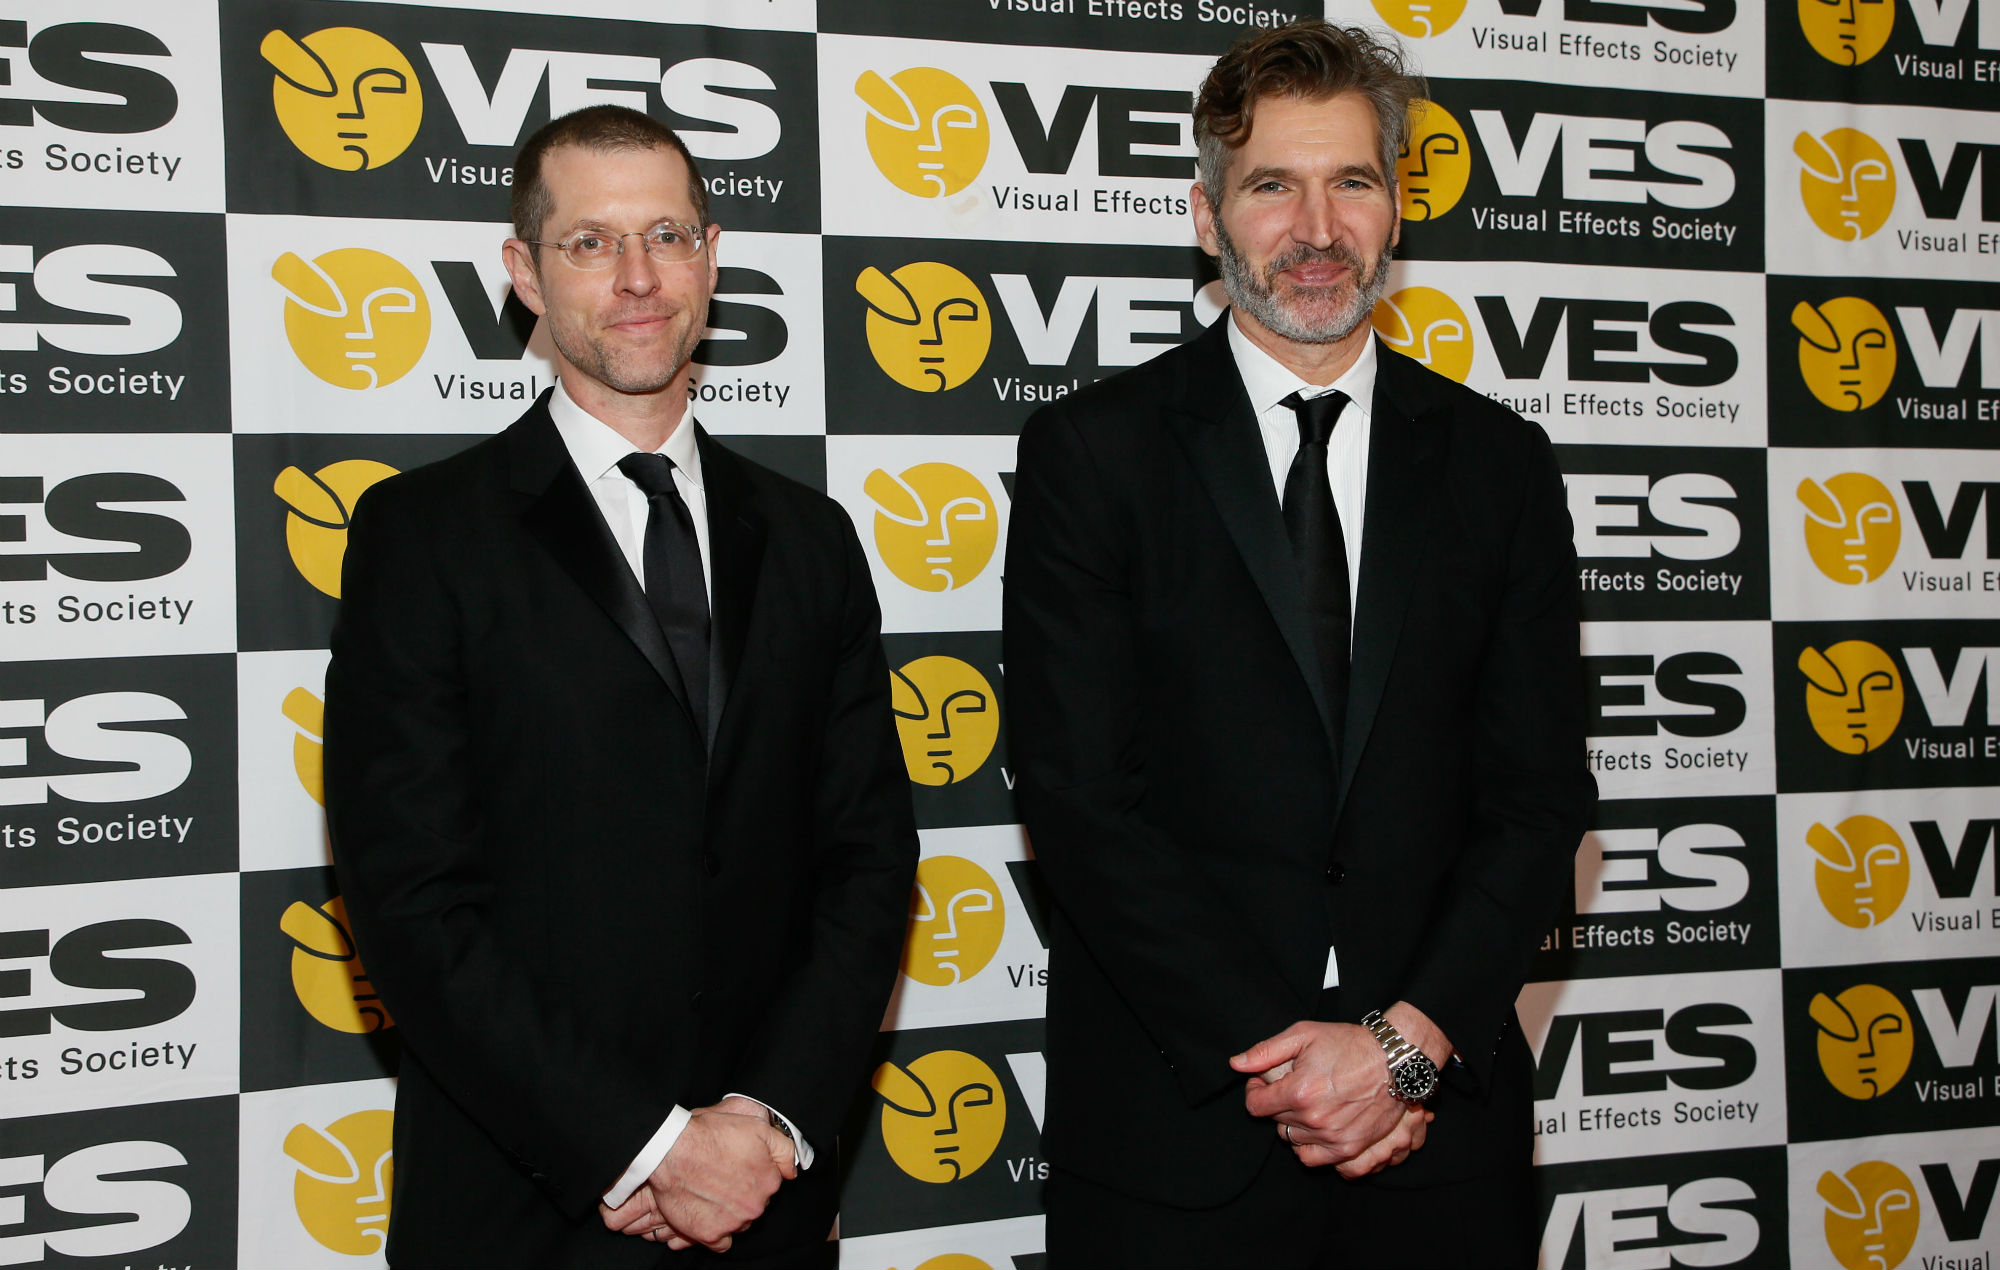 David Benioff, left, and D.B. Weiss, of Game of Thrones and the Creative Excellence Award recipients pose at the 17th annual VES Awards at the Beverly Hilton Hotel on Tuesday, February 5, 2019 in Beverly Hills, California